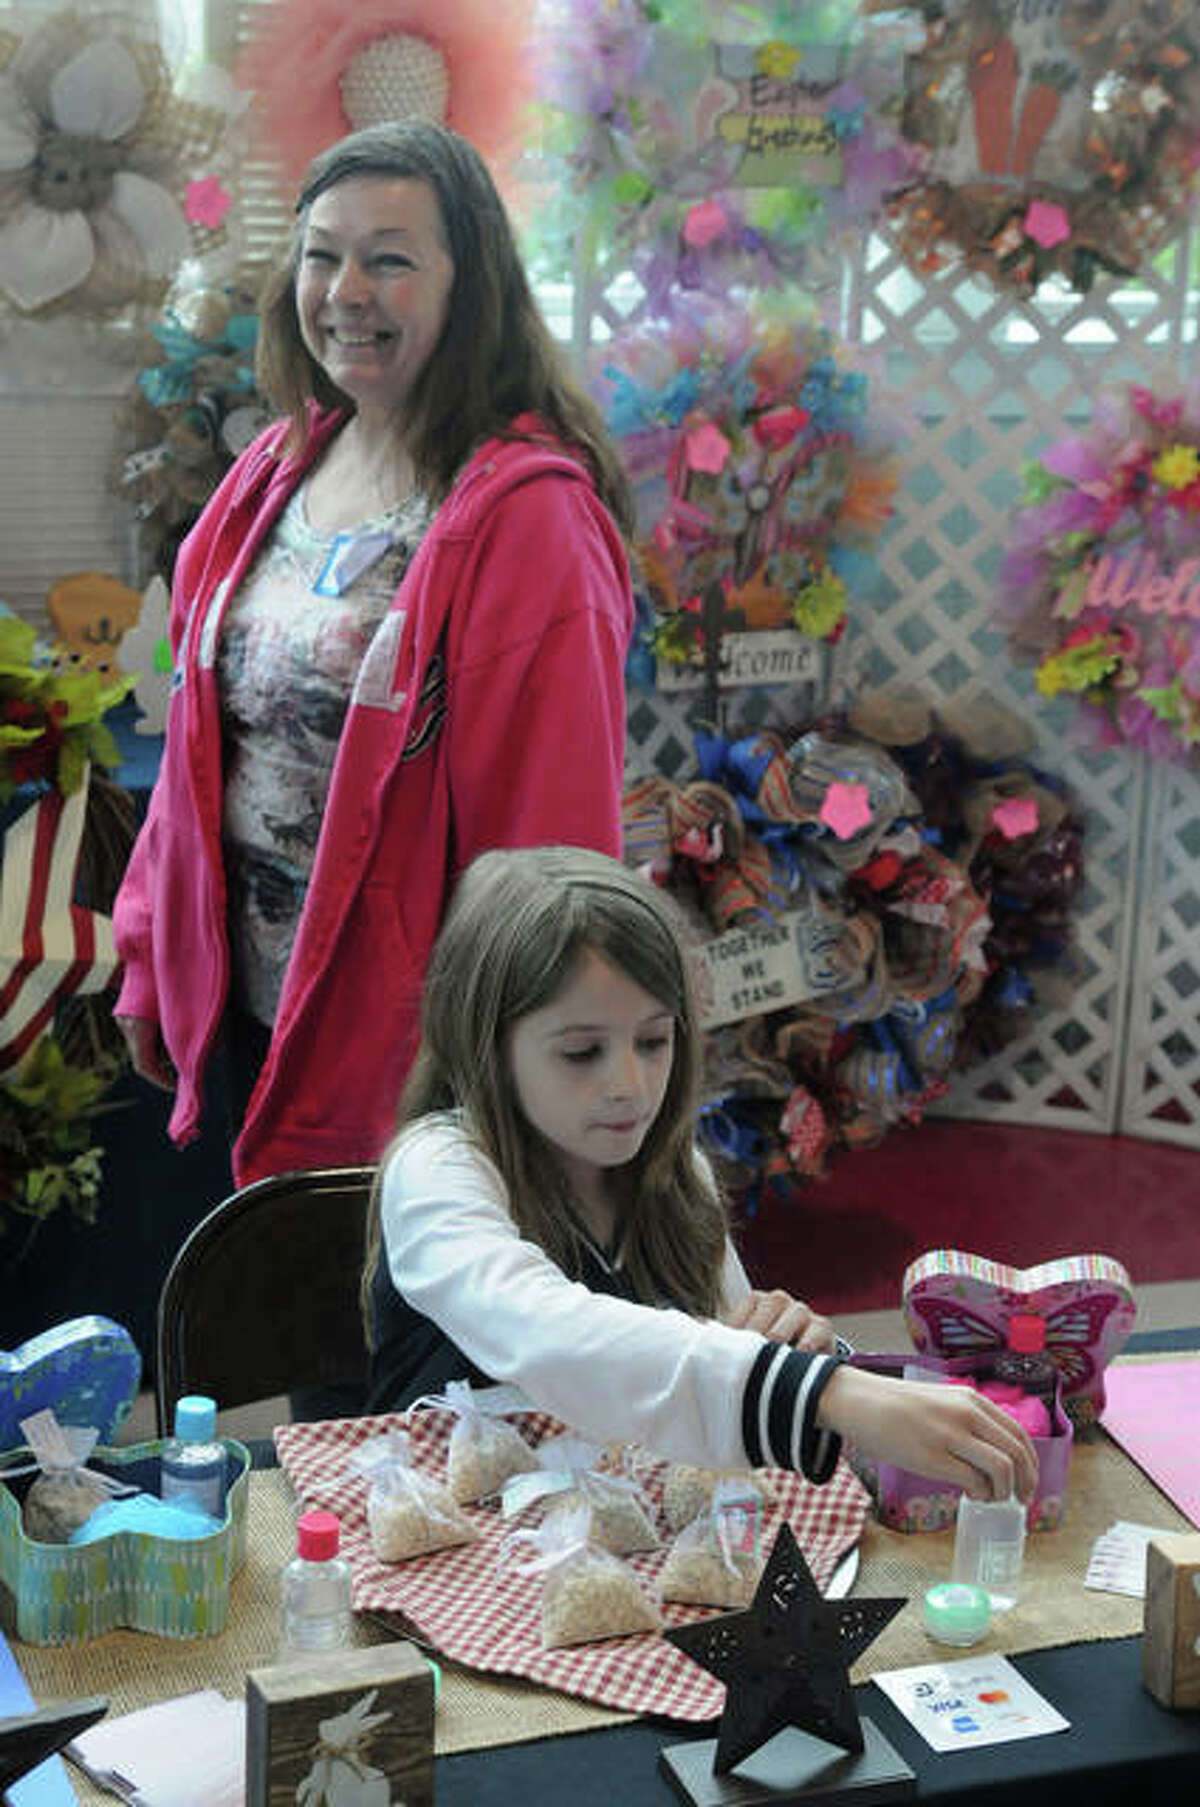 Nine-year-old Shayla Sikorski, of Panama, Illinois was one of the younger vendors working at the Olde Alton Vendor & Craft Fair.